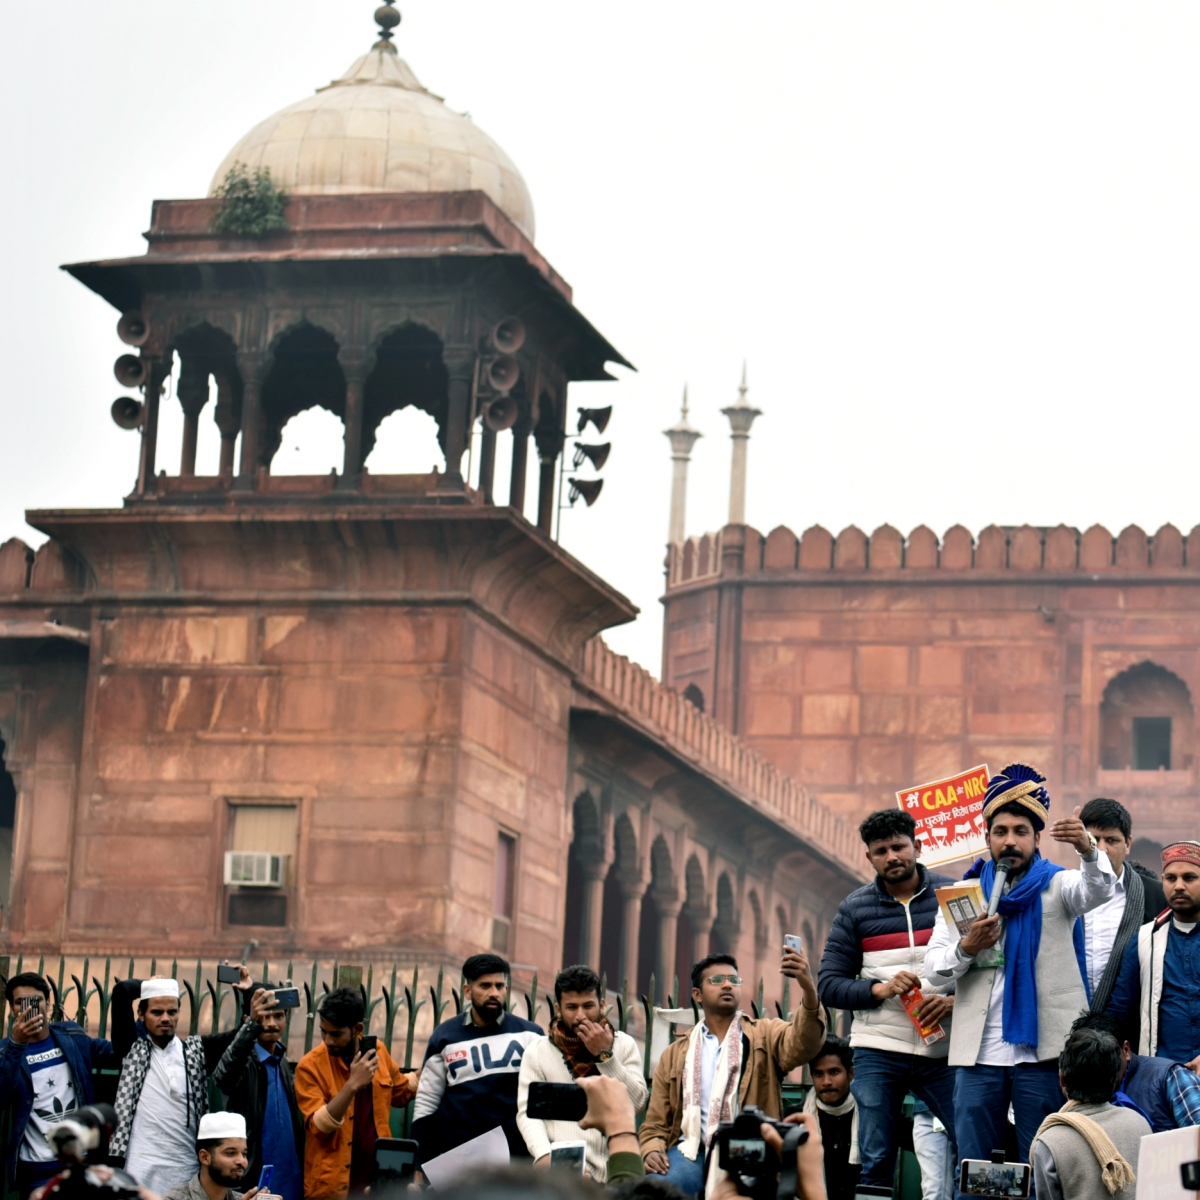 Bhim Army chief visits Jama Masjid after release from Tihar Jail